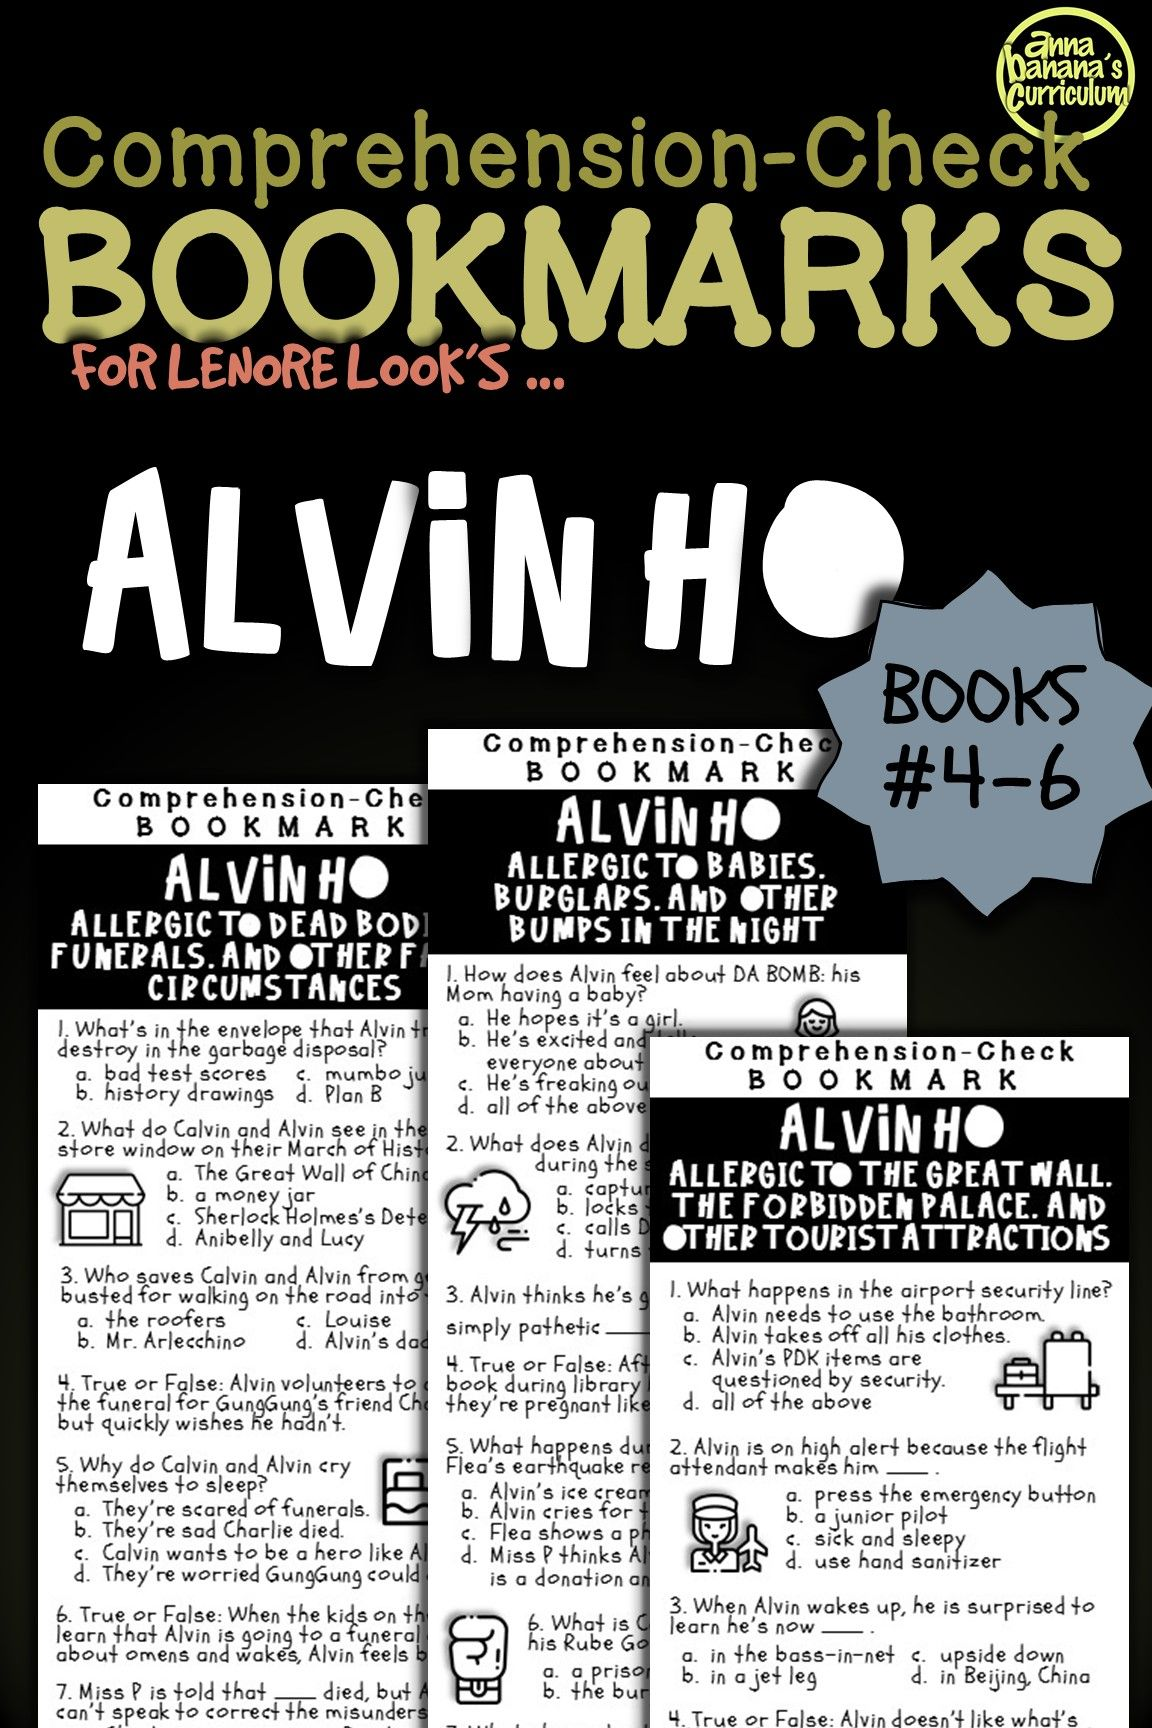 Alvin Ho Series Books 4 6 Comprehension Check Bookmarks